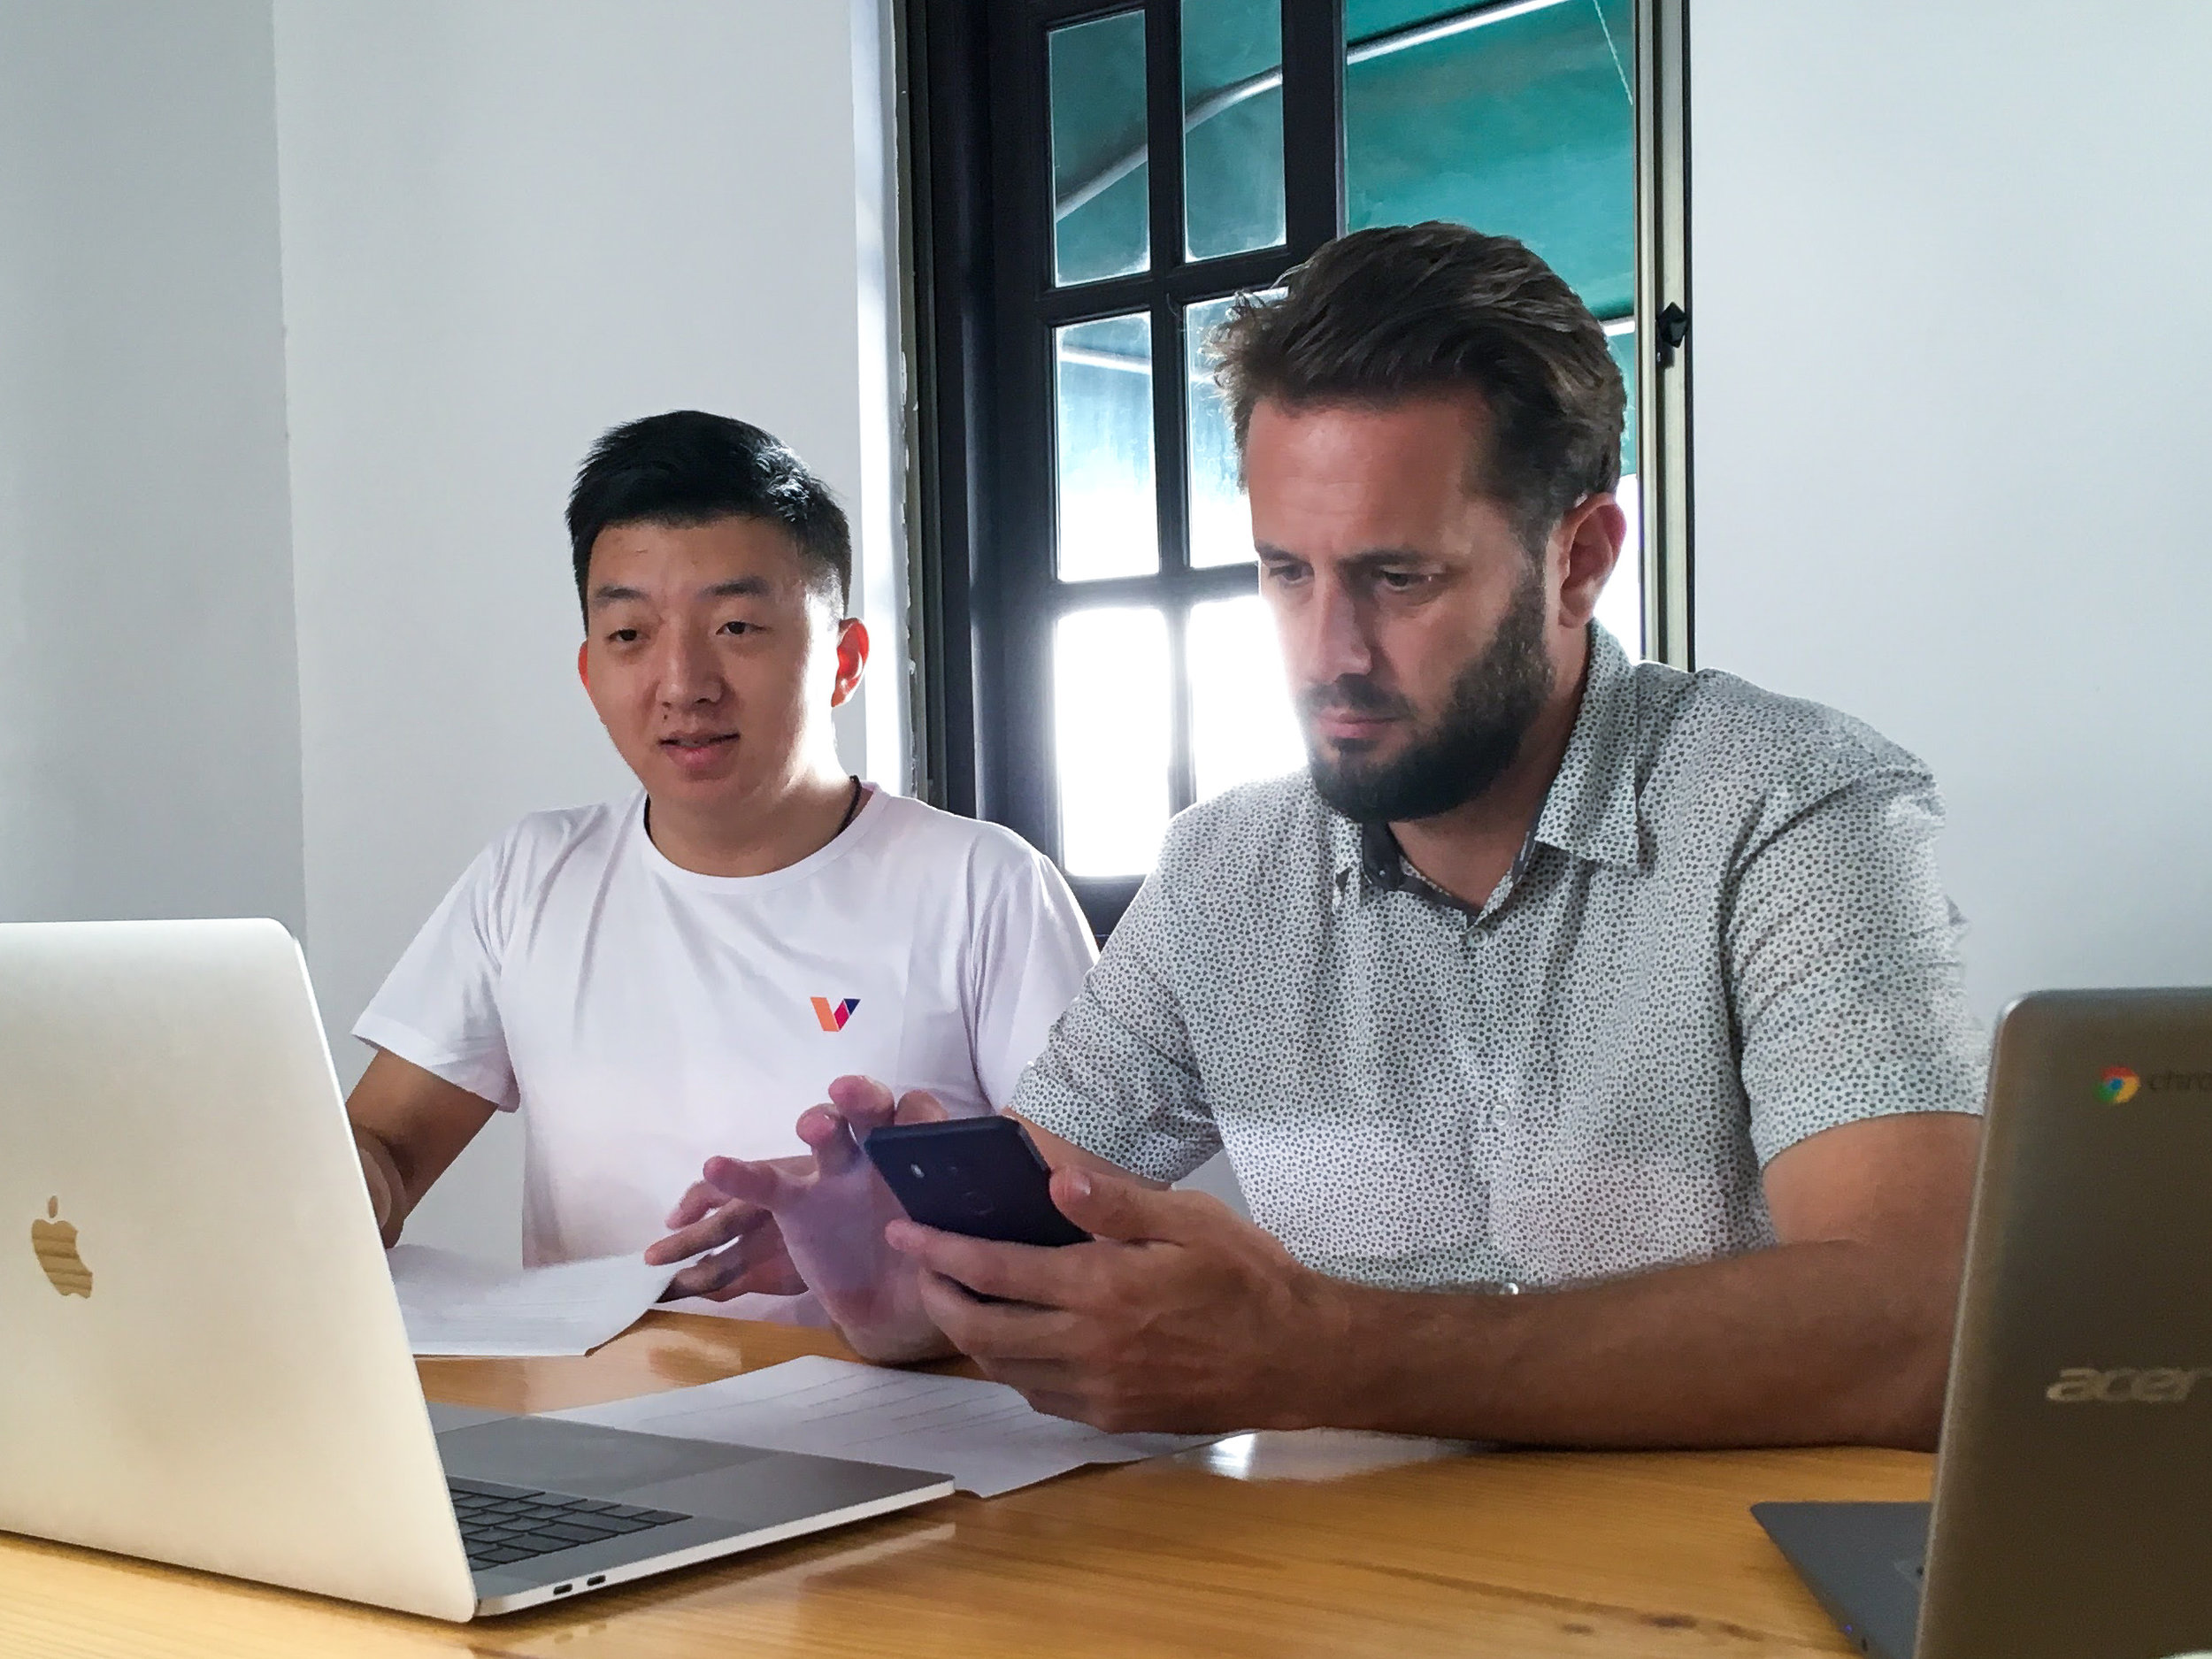 By a Pioneering Team of Creatives for Creatives - Vevue (pronounced vay-view) was founded by Thomas Olson (right) in 2012 with the initiative to source honest peer-to-peer original video content. He teamed up with co-founder Xiangu Meng (left) to make it happen.Together, they have been a driving force to push the boundaries of blockchain and create the next-generation of social media.Today, Vevue's team is competitive to some of the best-funded, most advanced teams in Silicon Valley and tech companies around the world. Reach out to any of the officers listed below for interviews or inquires.